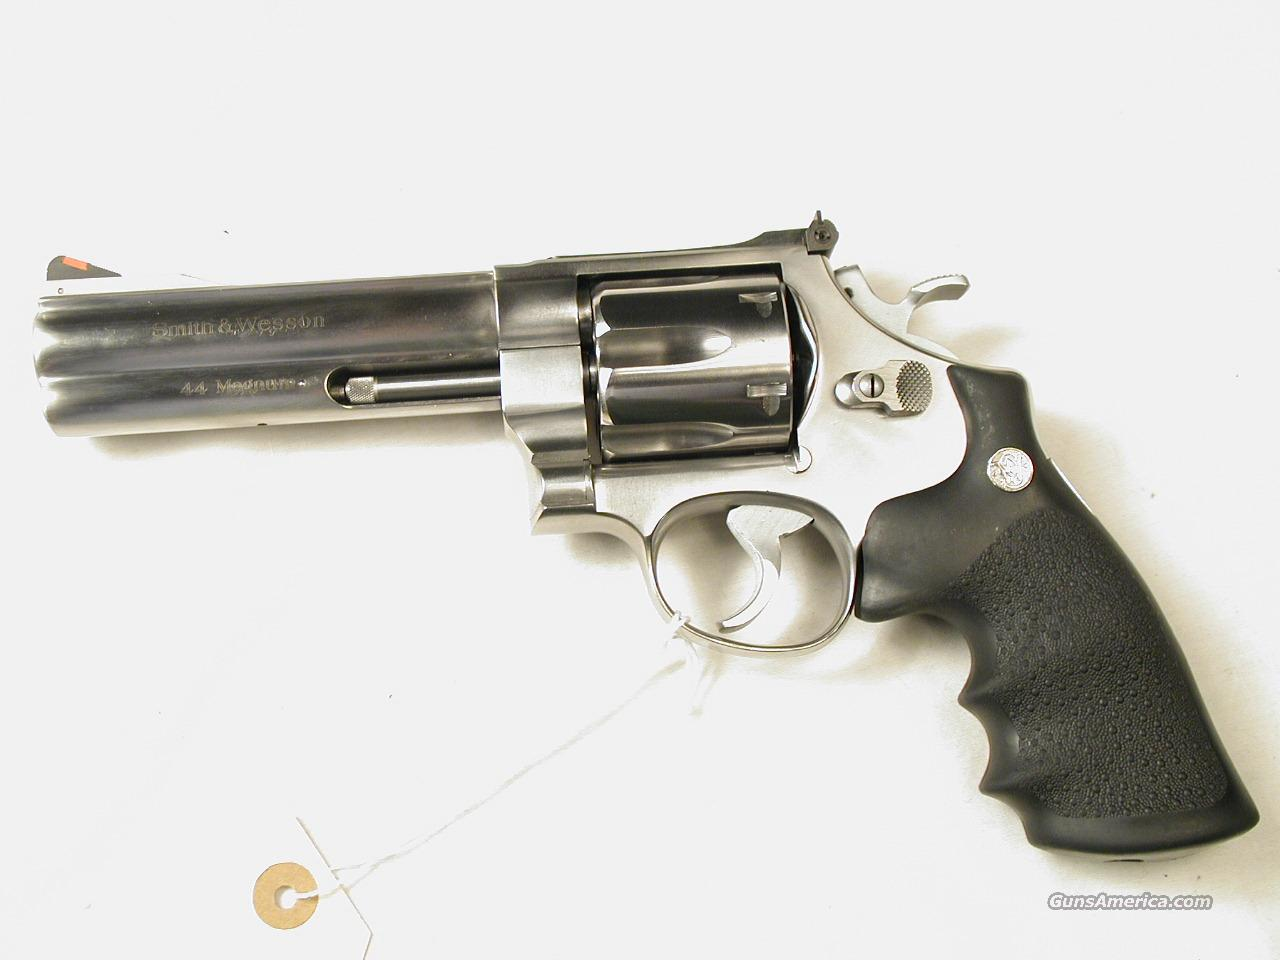 SMITH & WESSON 629 CLASSIC  Guns > Pistols > Smith & Wesson Revolvers > Model 629